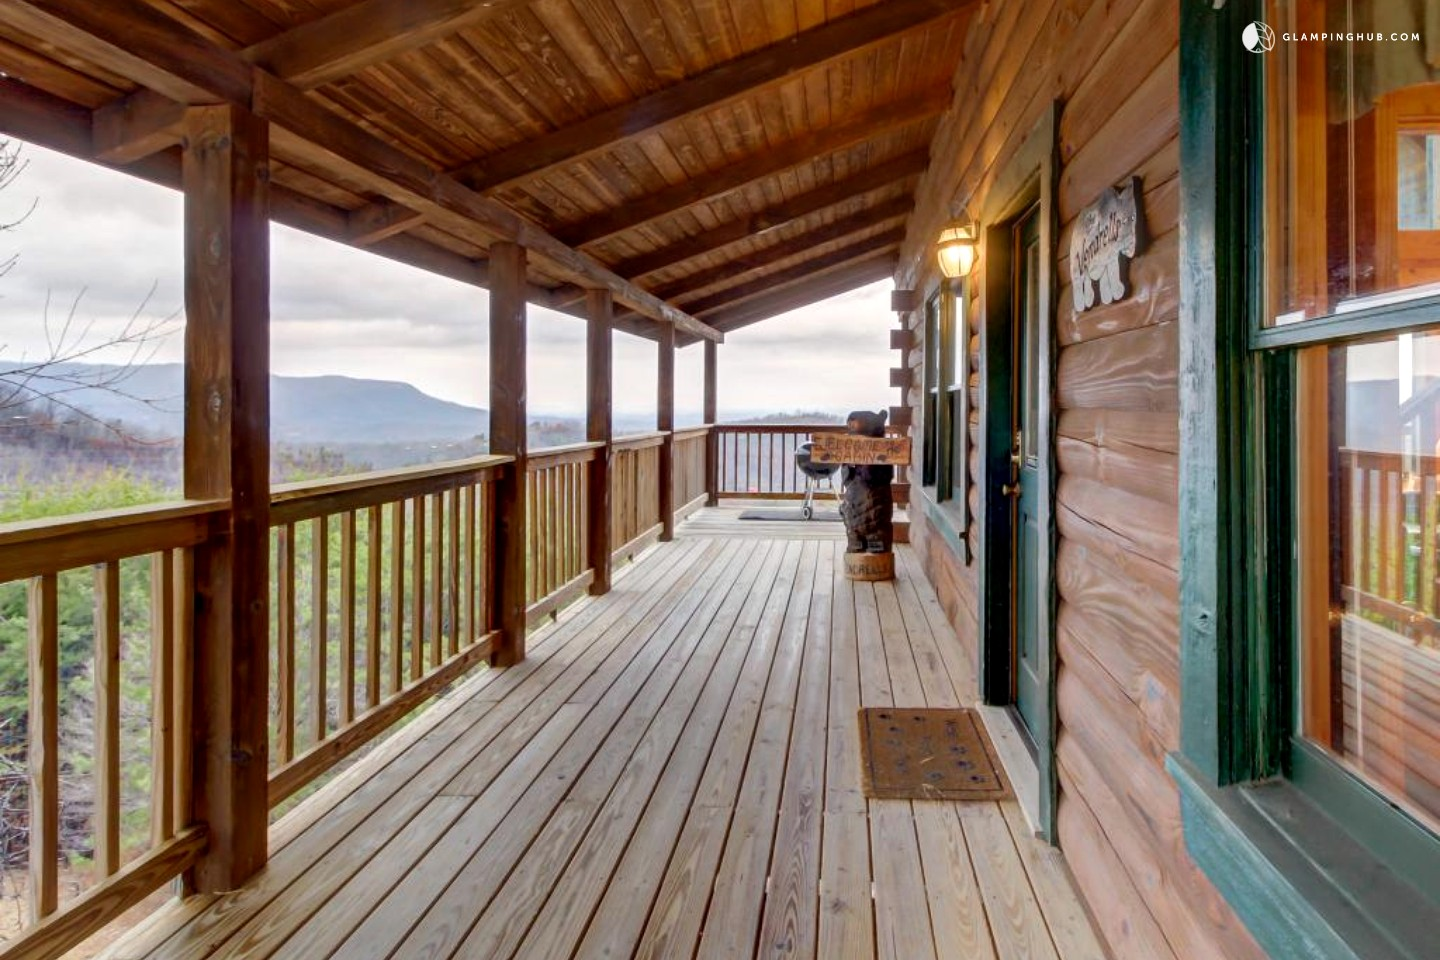 Cabin near the great smoky mountains in sevierville tennessee for Luxury pet friendly cabins in gatlinburg tn